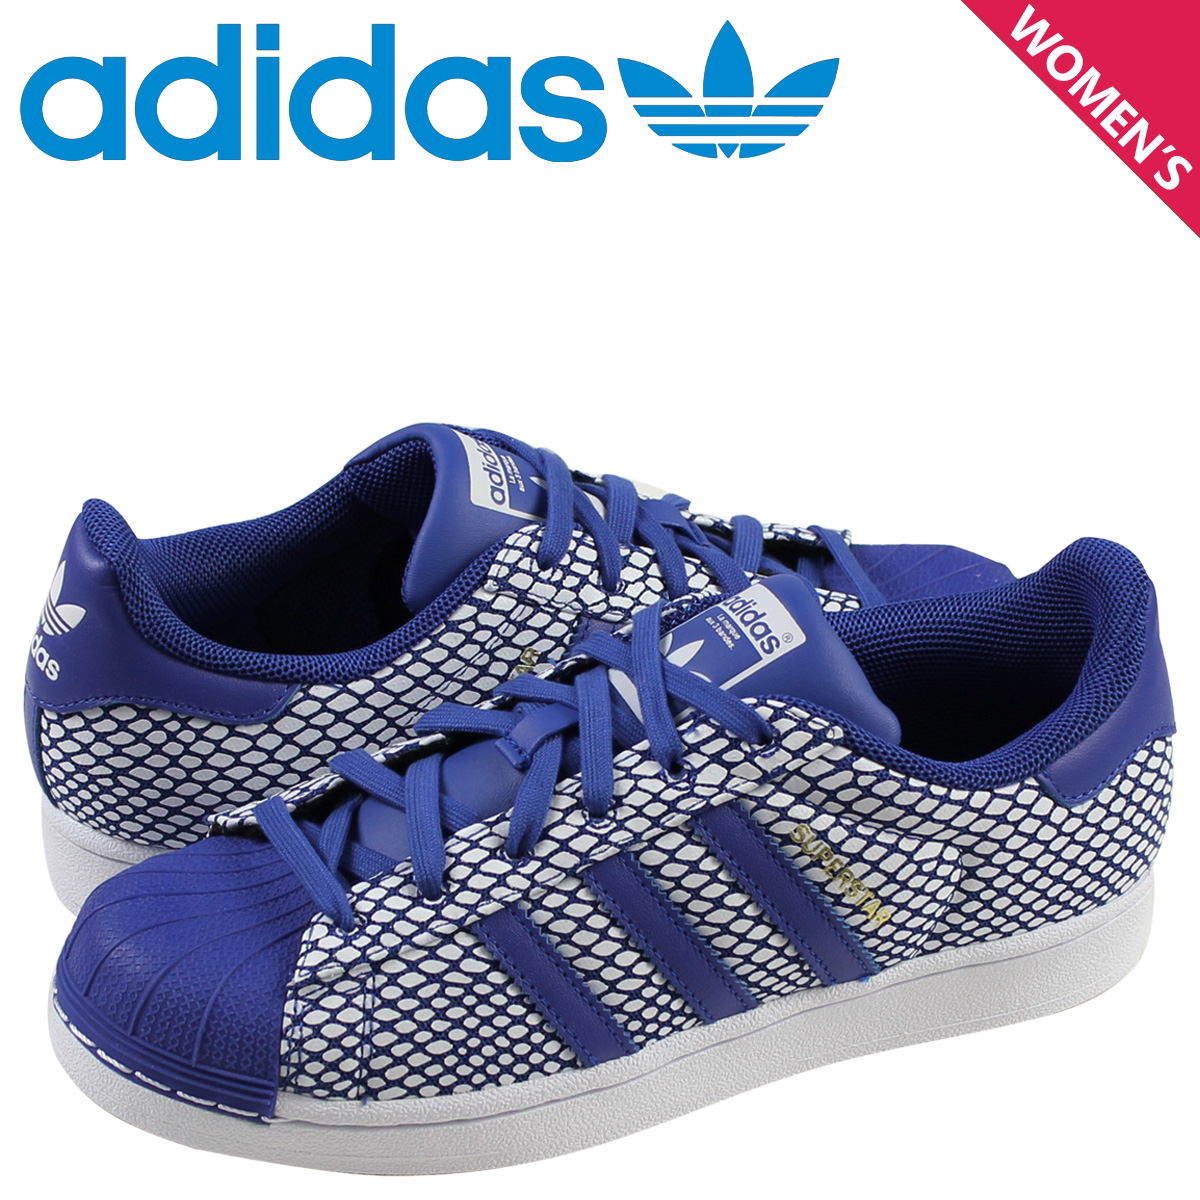 adidas mi superstar rt women's